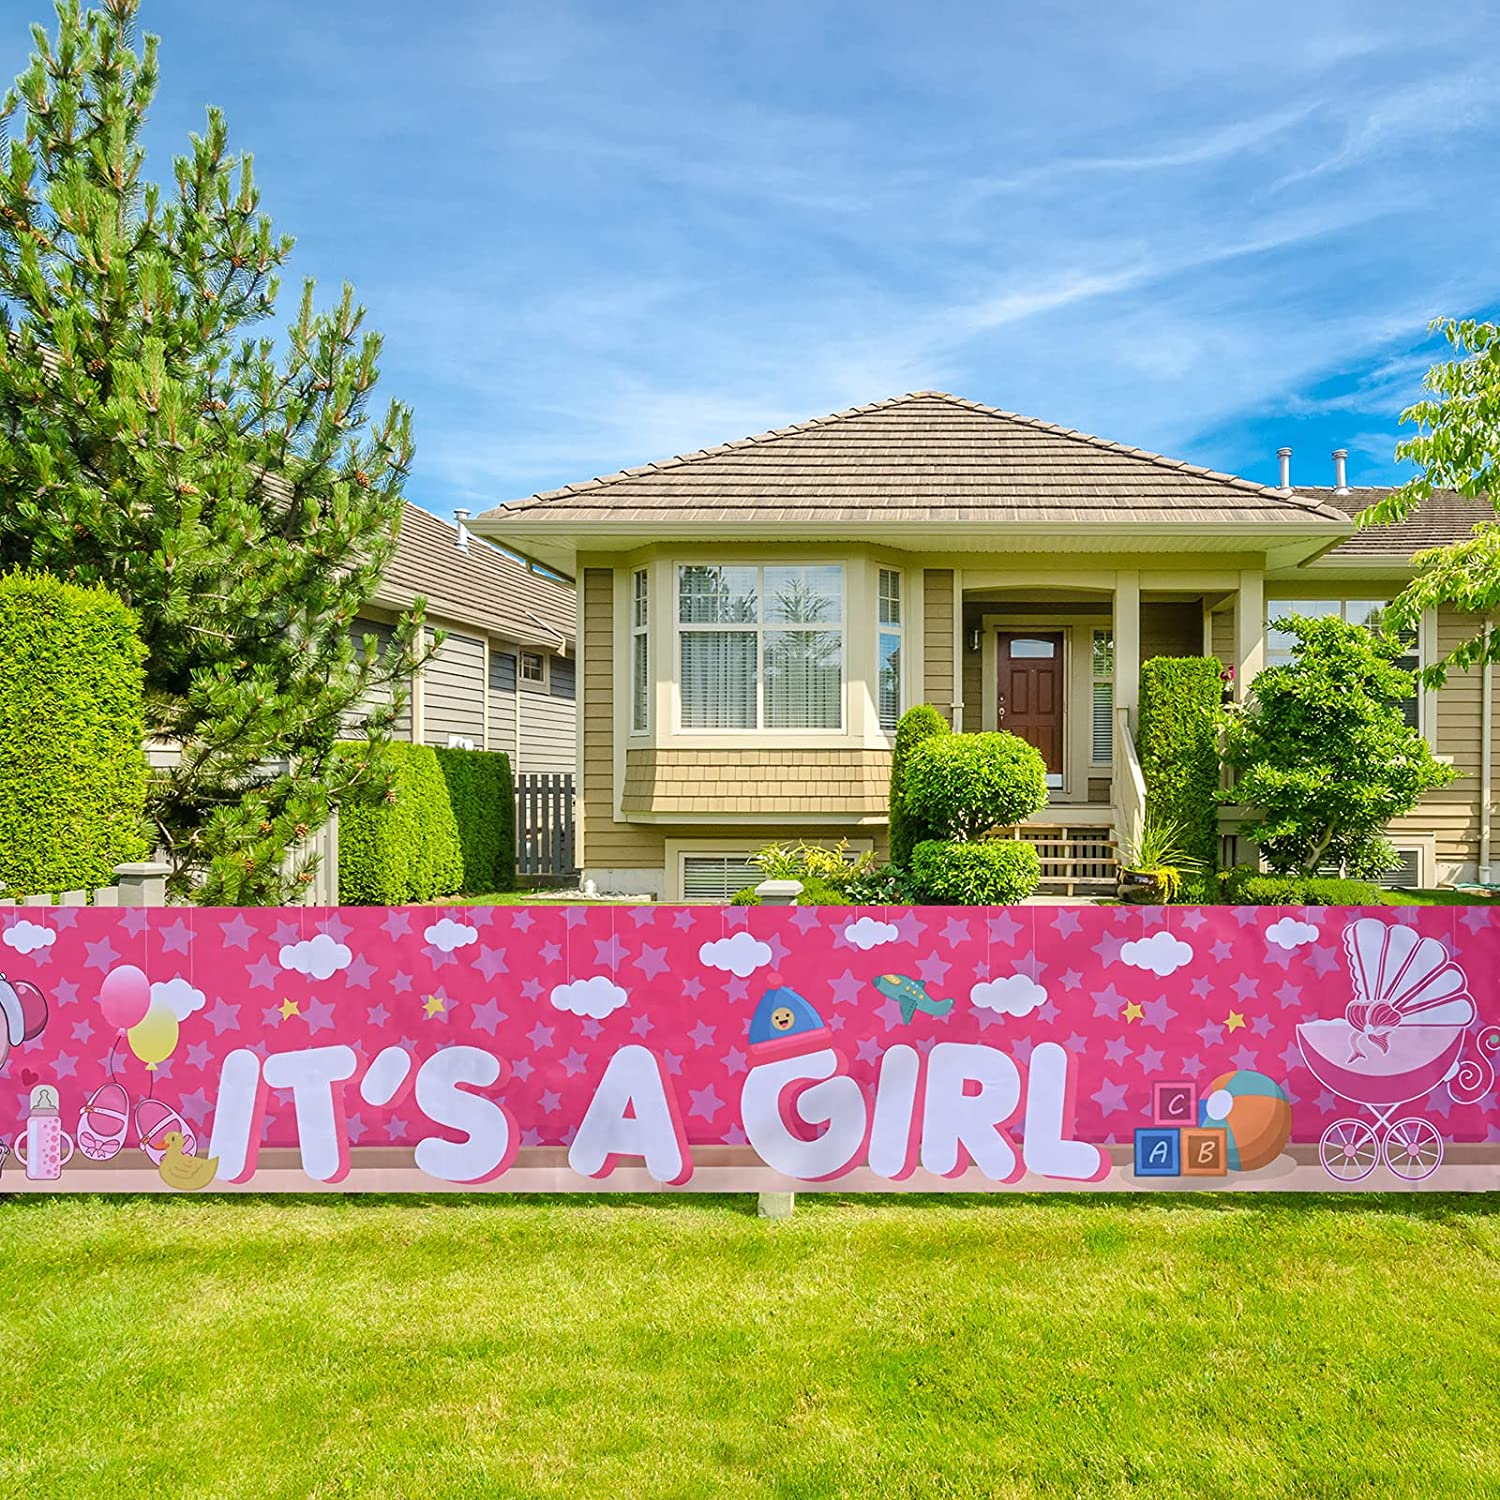 Baby Shower Banner Backdrop Background 9.8ft x 1.6ft Its A Girl Yard Sign Outdoor Decorations Large Baby Shower Banner with Cool Baby Baby Shower Decoration for Baby Girl